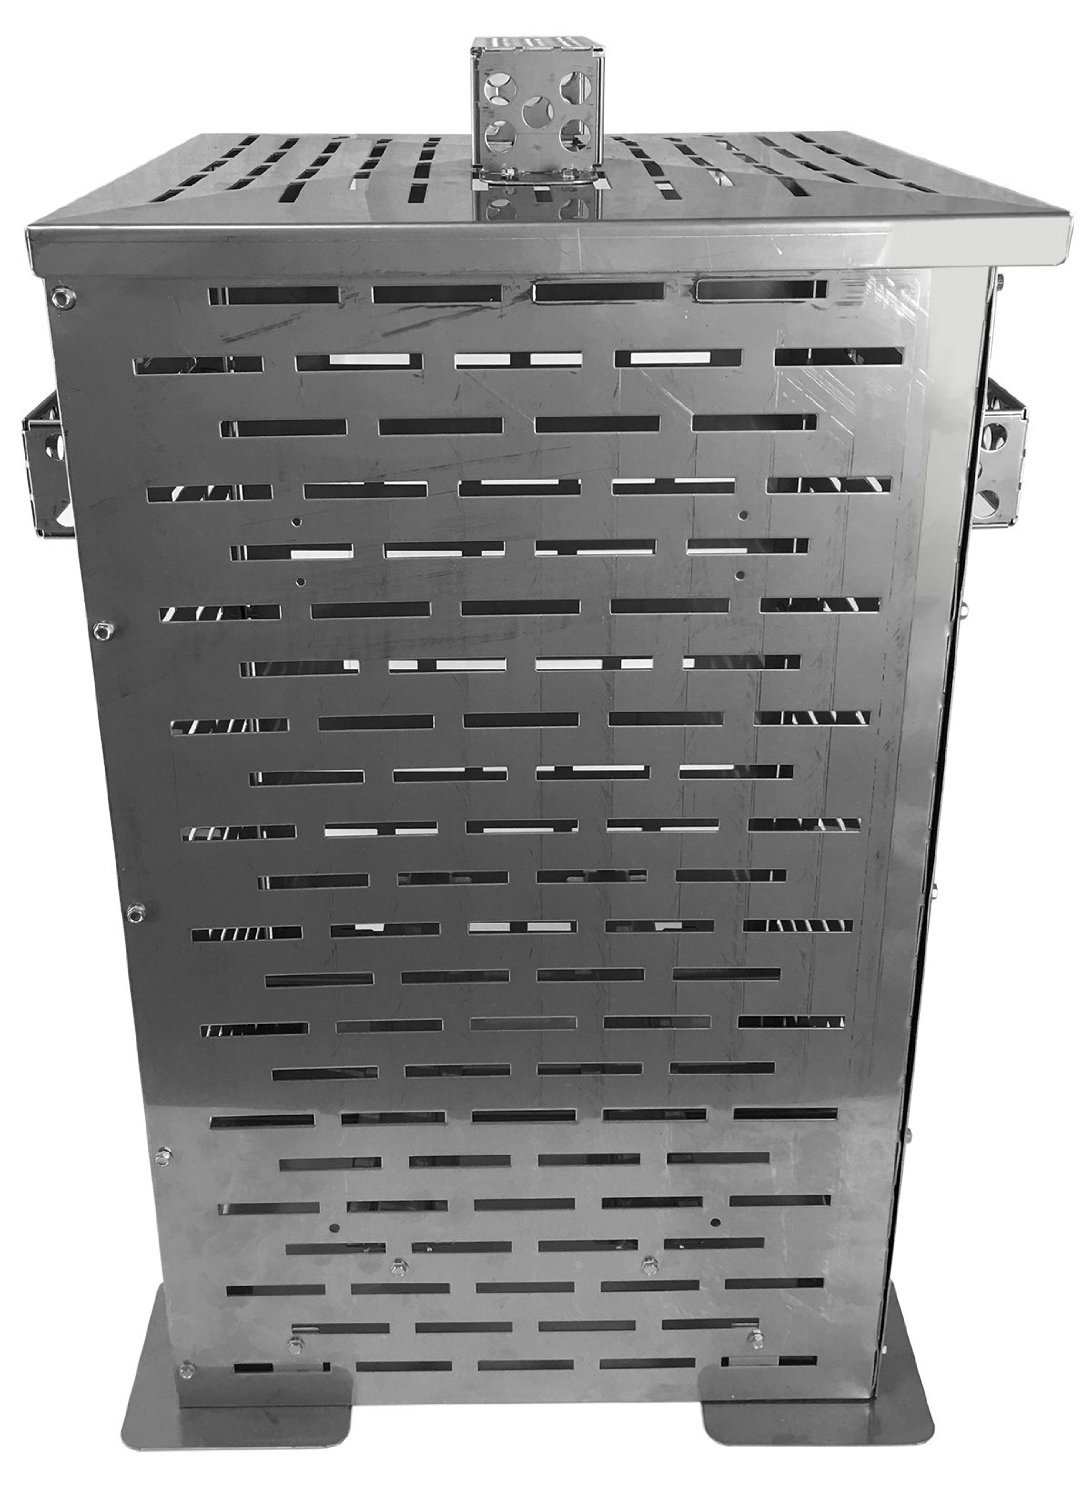 Image of Professional Grade Products 9900000 High Grade Stainless Steel Burn Barrel Incinerator Cage, 24' x 14' x 14' Fire Pits & Outdoor Fireplaces